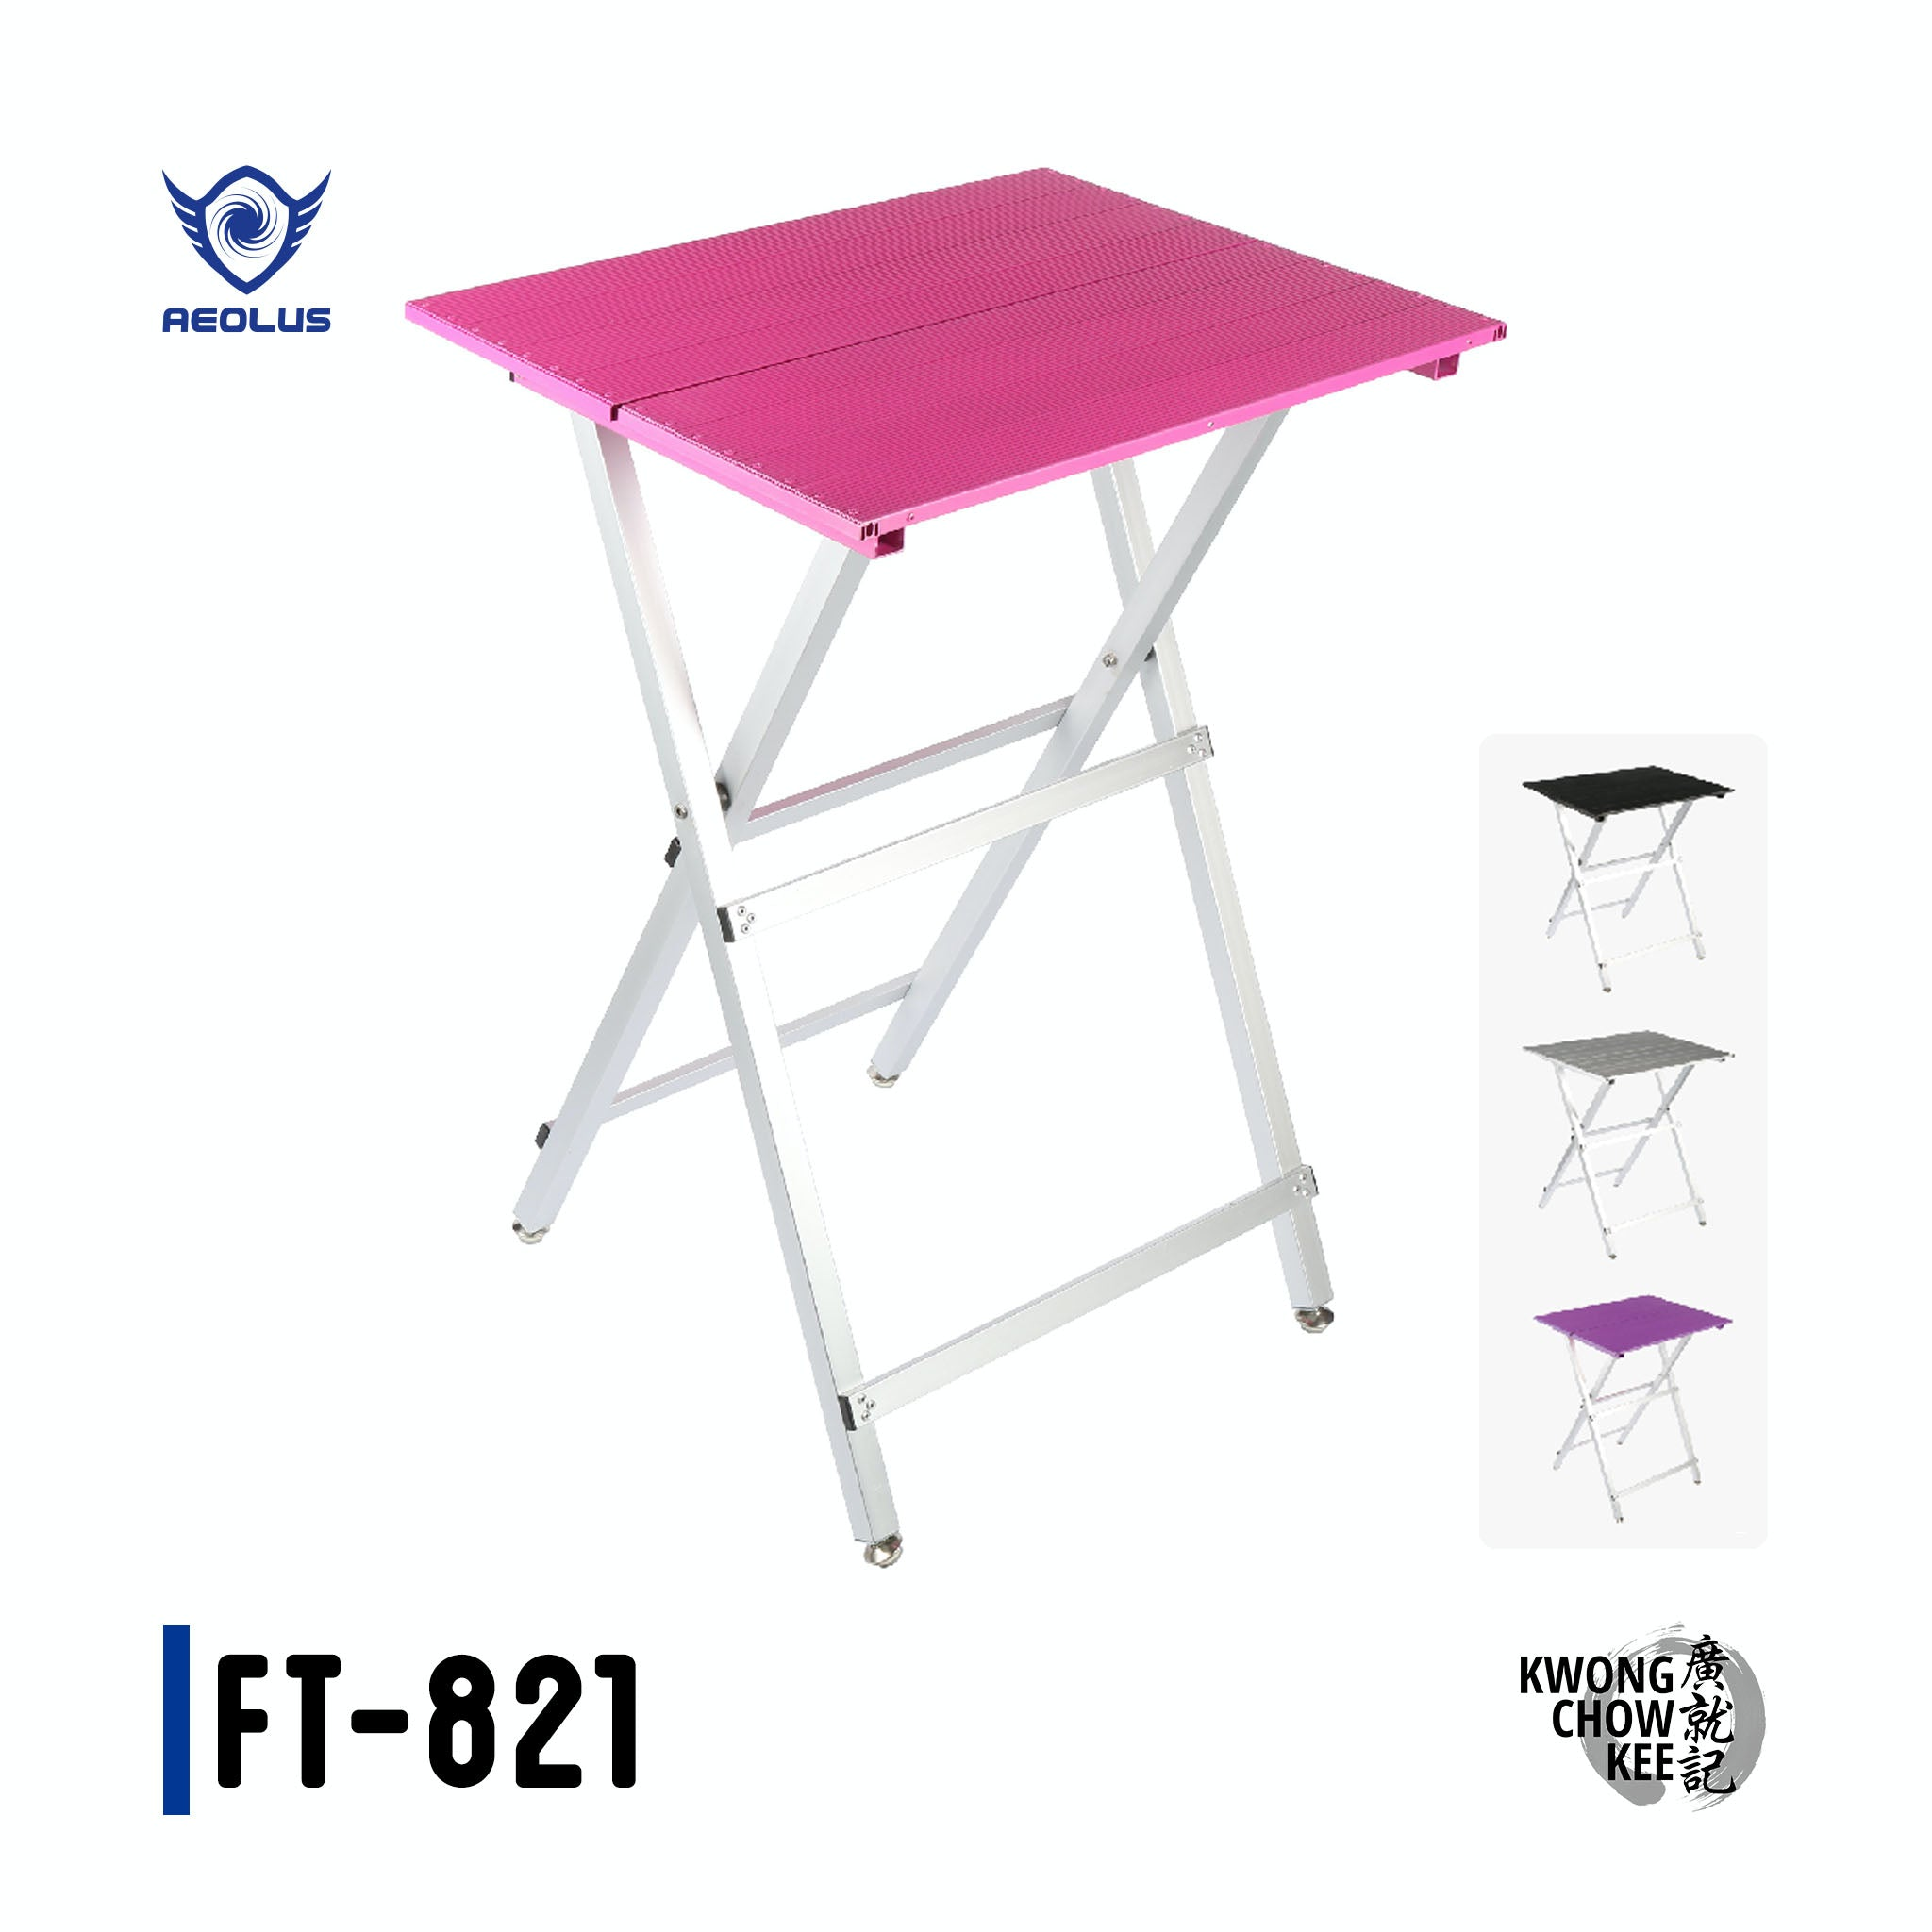 Lightweight Competition Table FT-821H